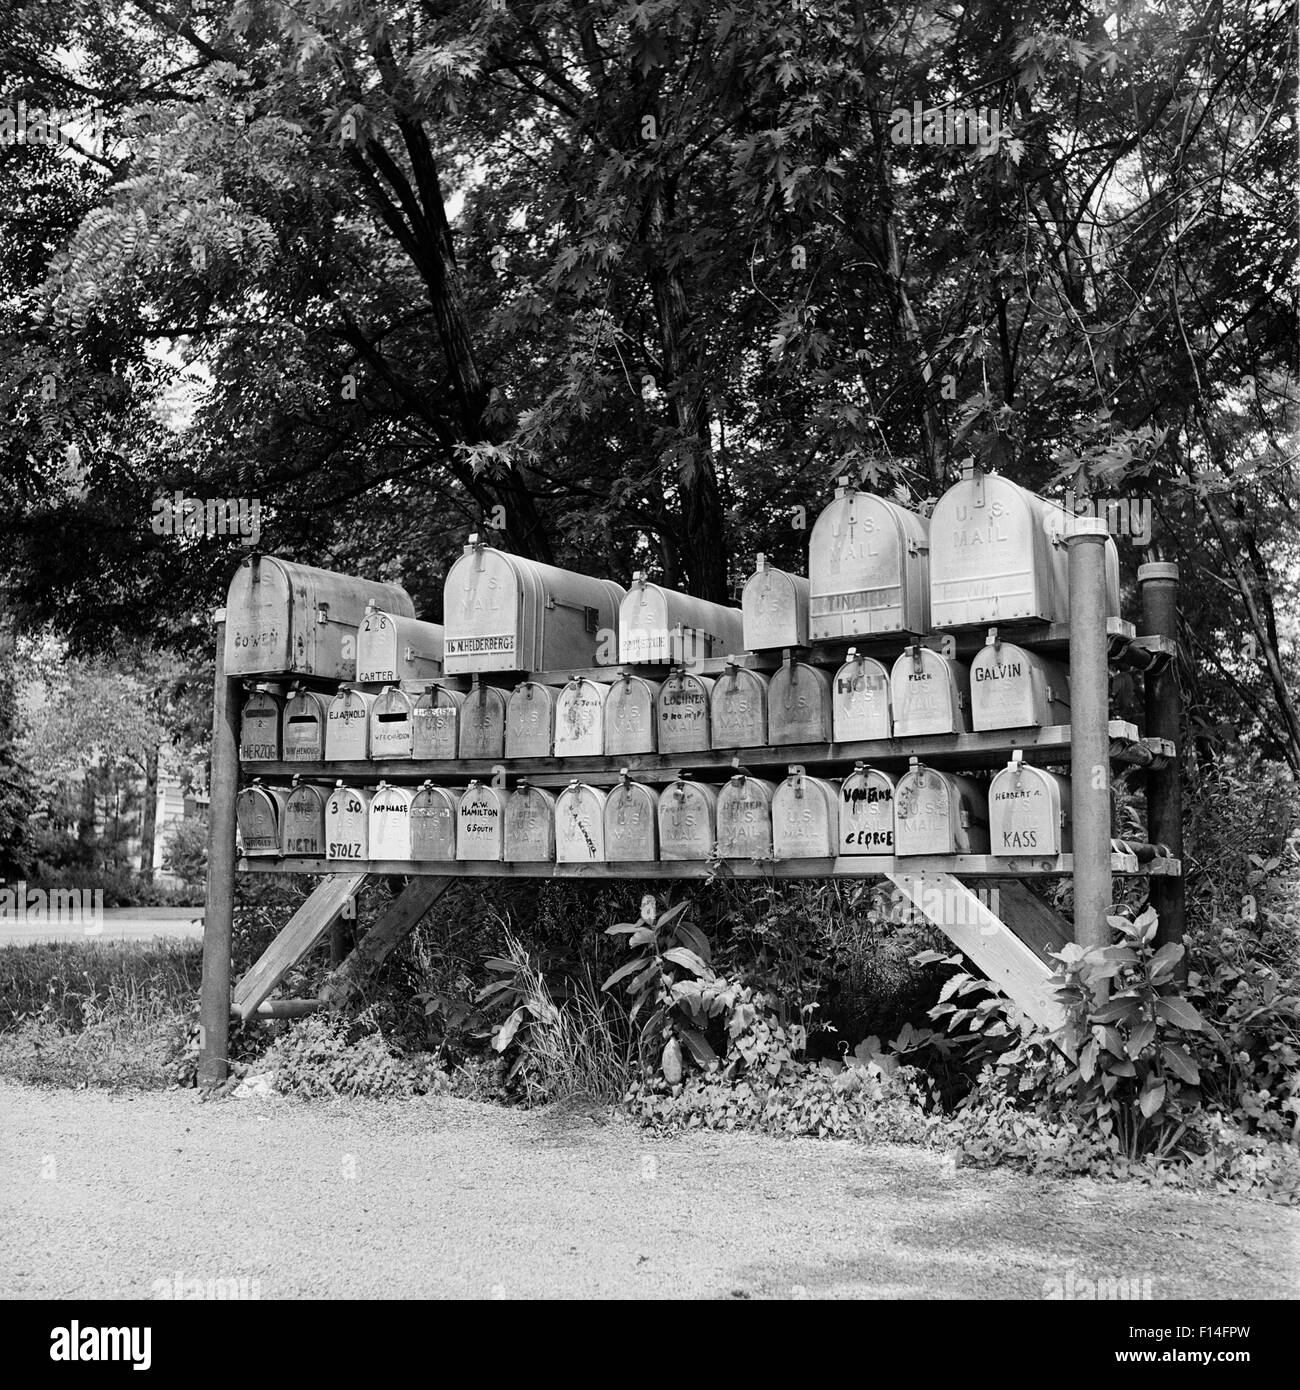 1930s 1940s 1950s GROUP OF 37 RURAL DELIVERY MAILBOXES AT SIDE OF COUNTRY ROAD Stock Photo